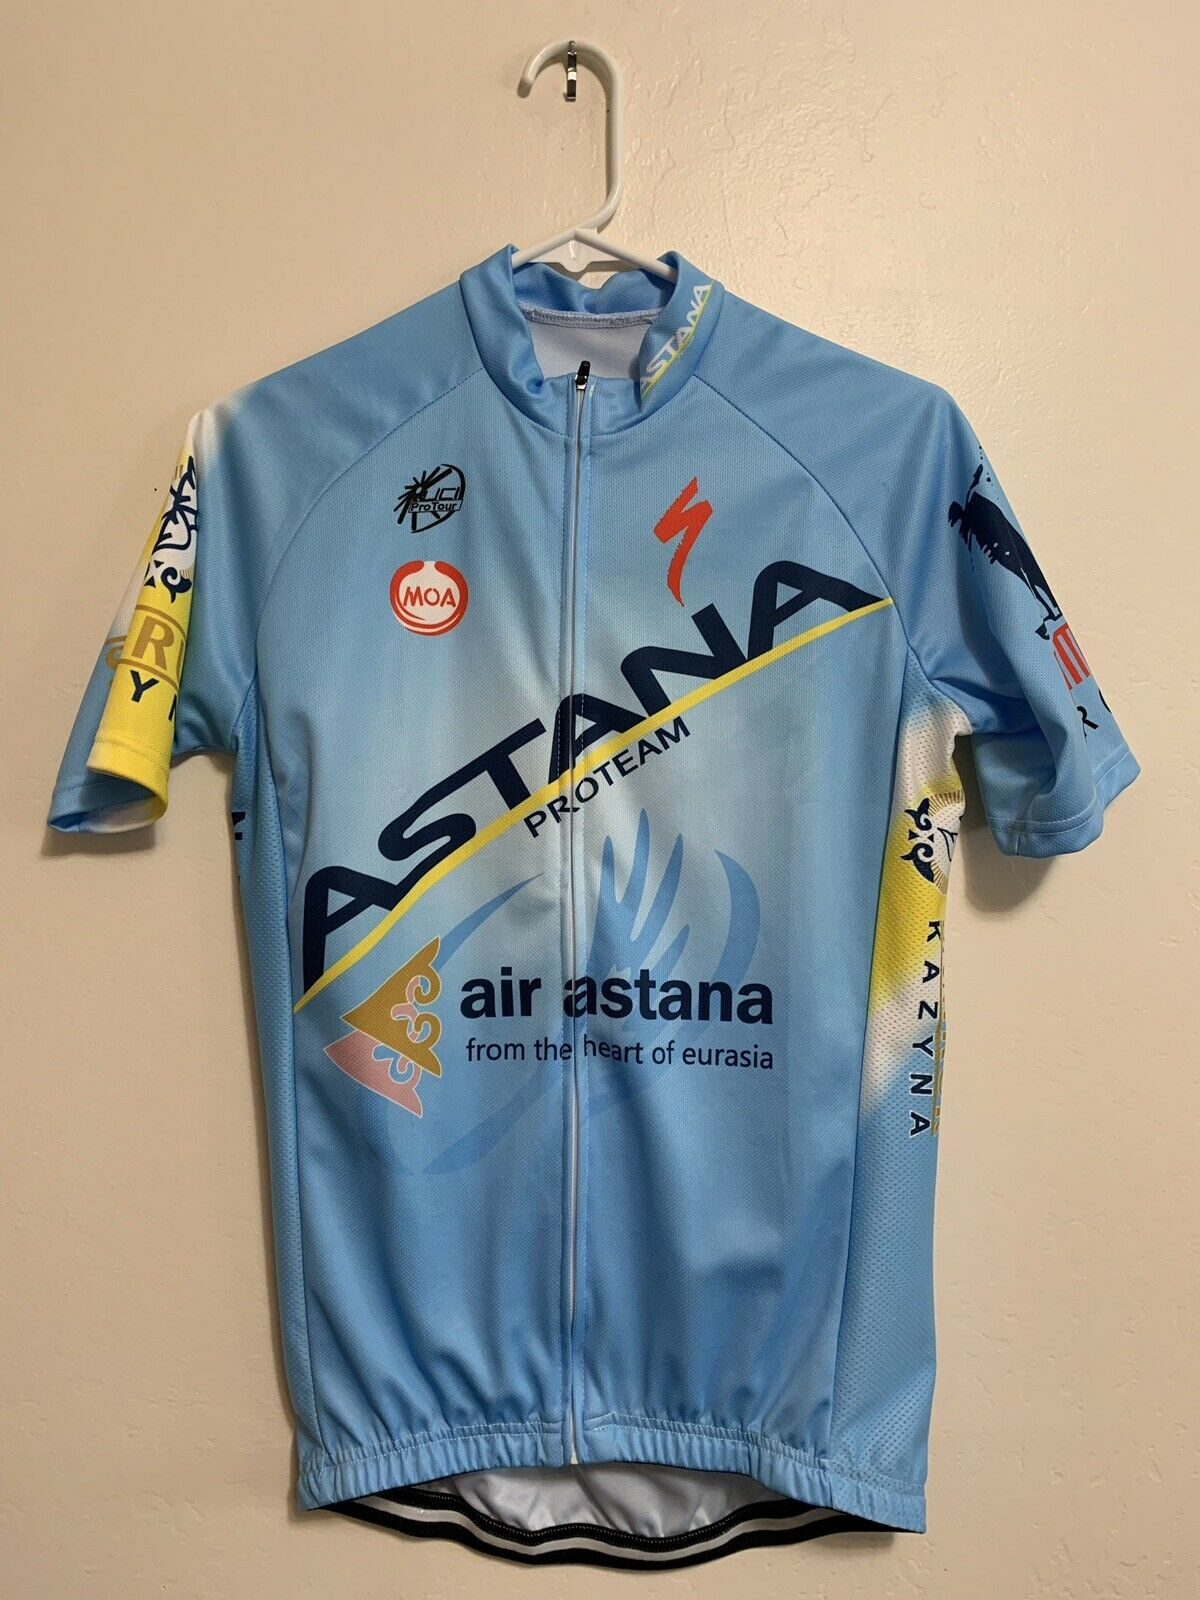 Astana - Bib Shorts and Short Sleeve Jersery Set